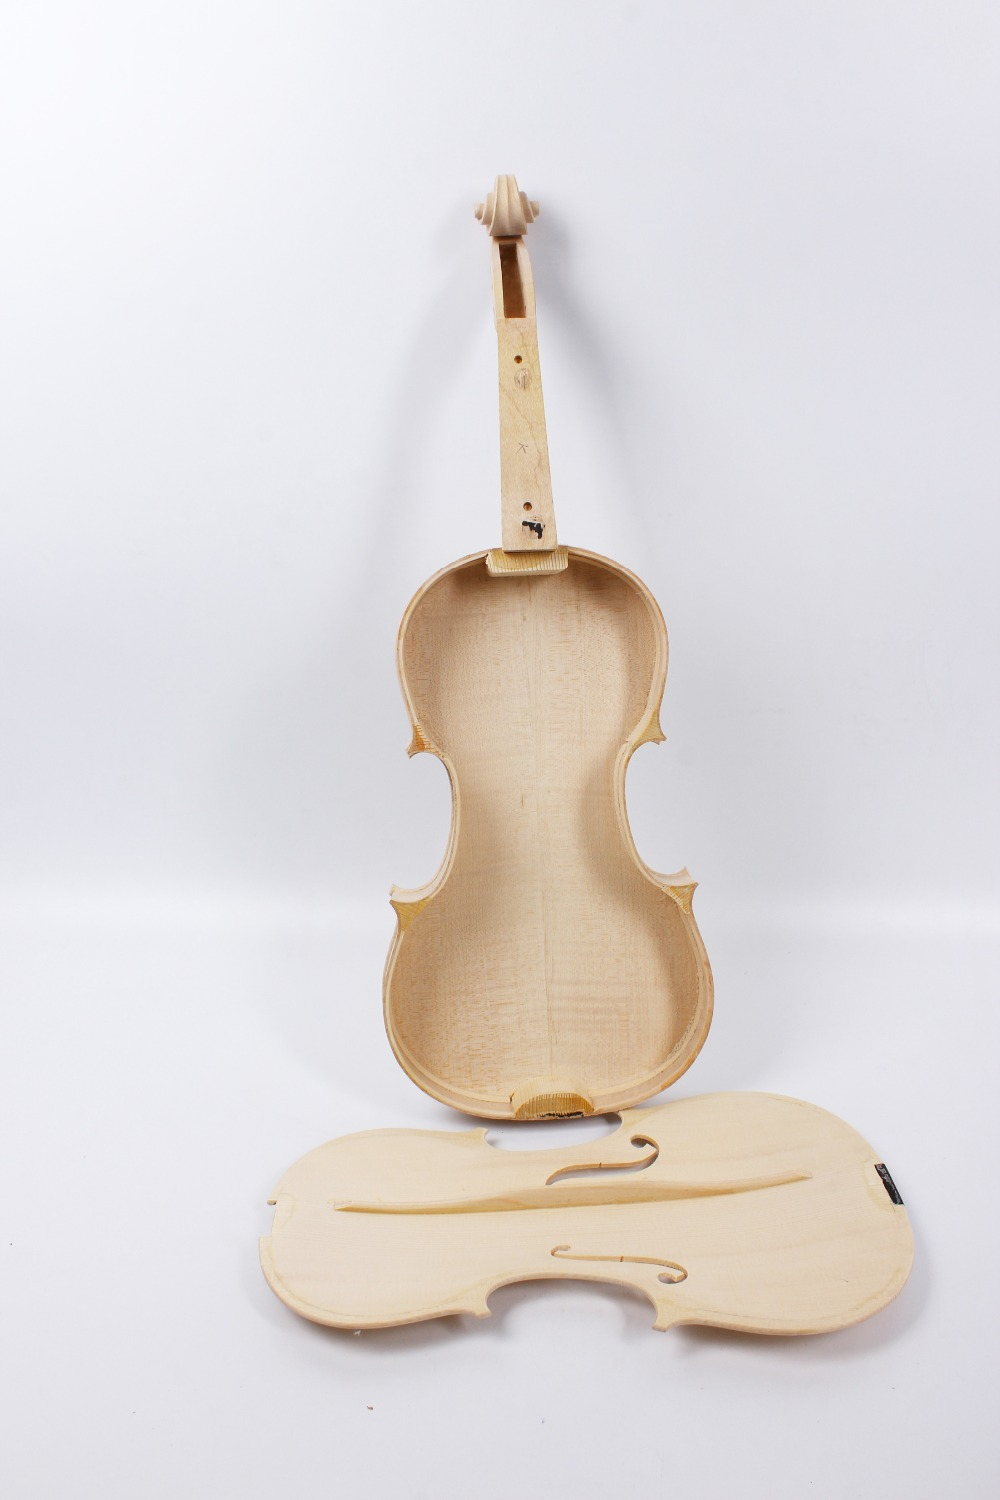 Yinfente White Unfinished Violin Flame Maple & Spruce wood Unglue Violin Accessories Violin Parts 4/4 Full Size